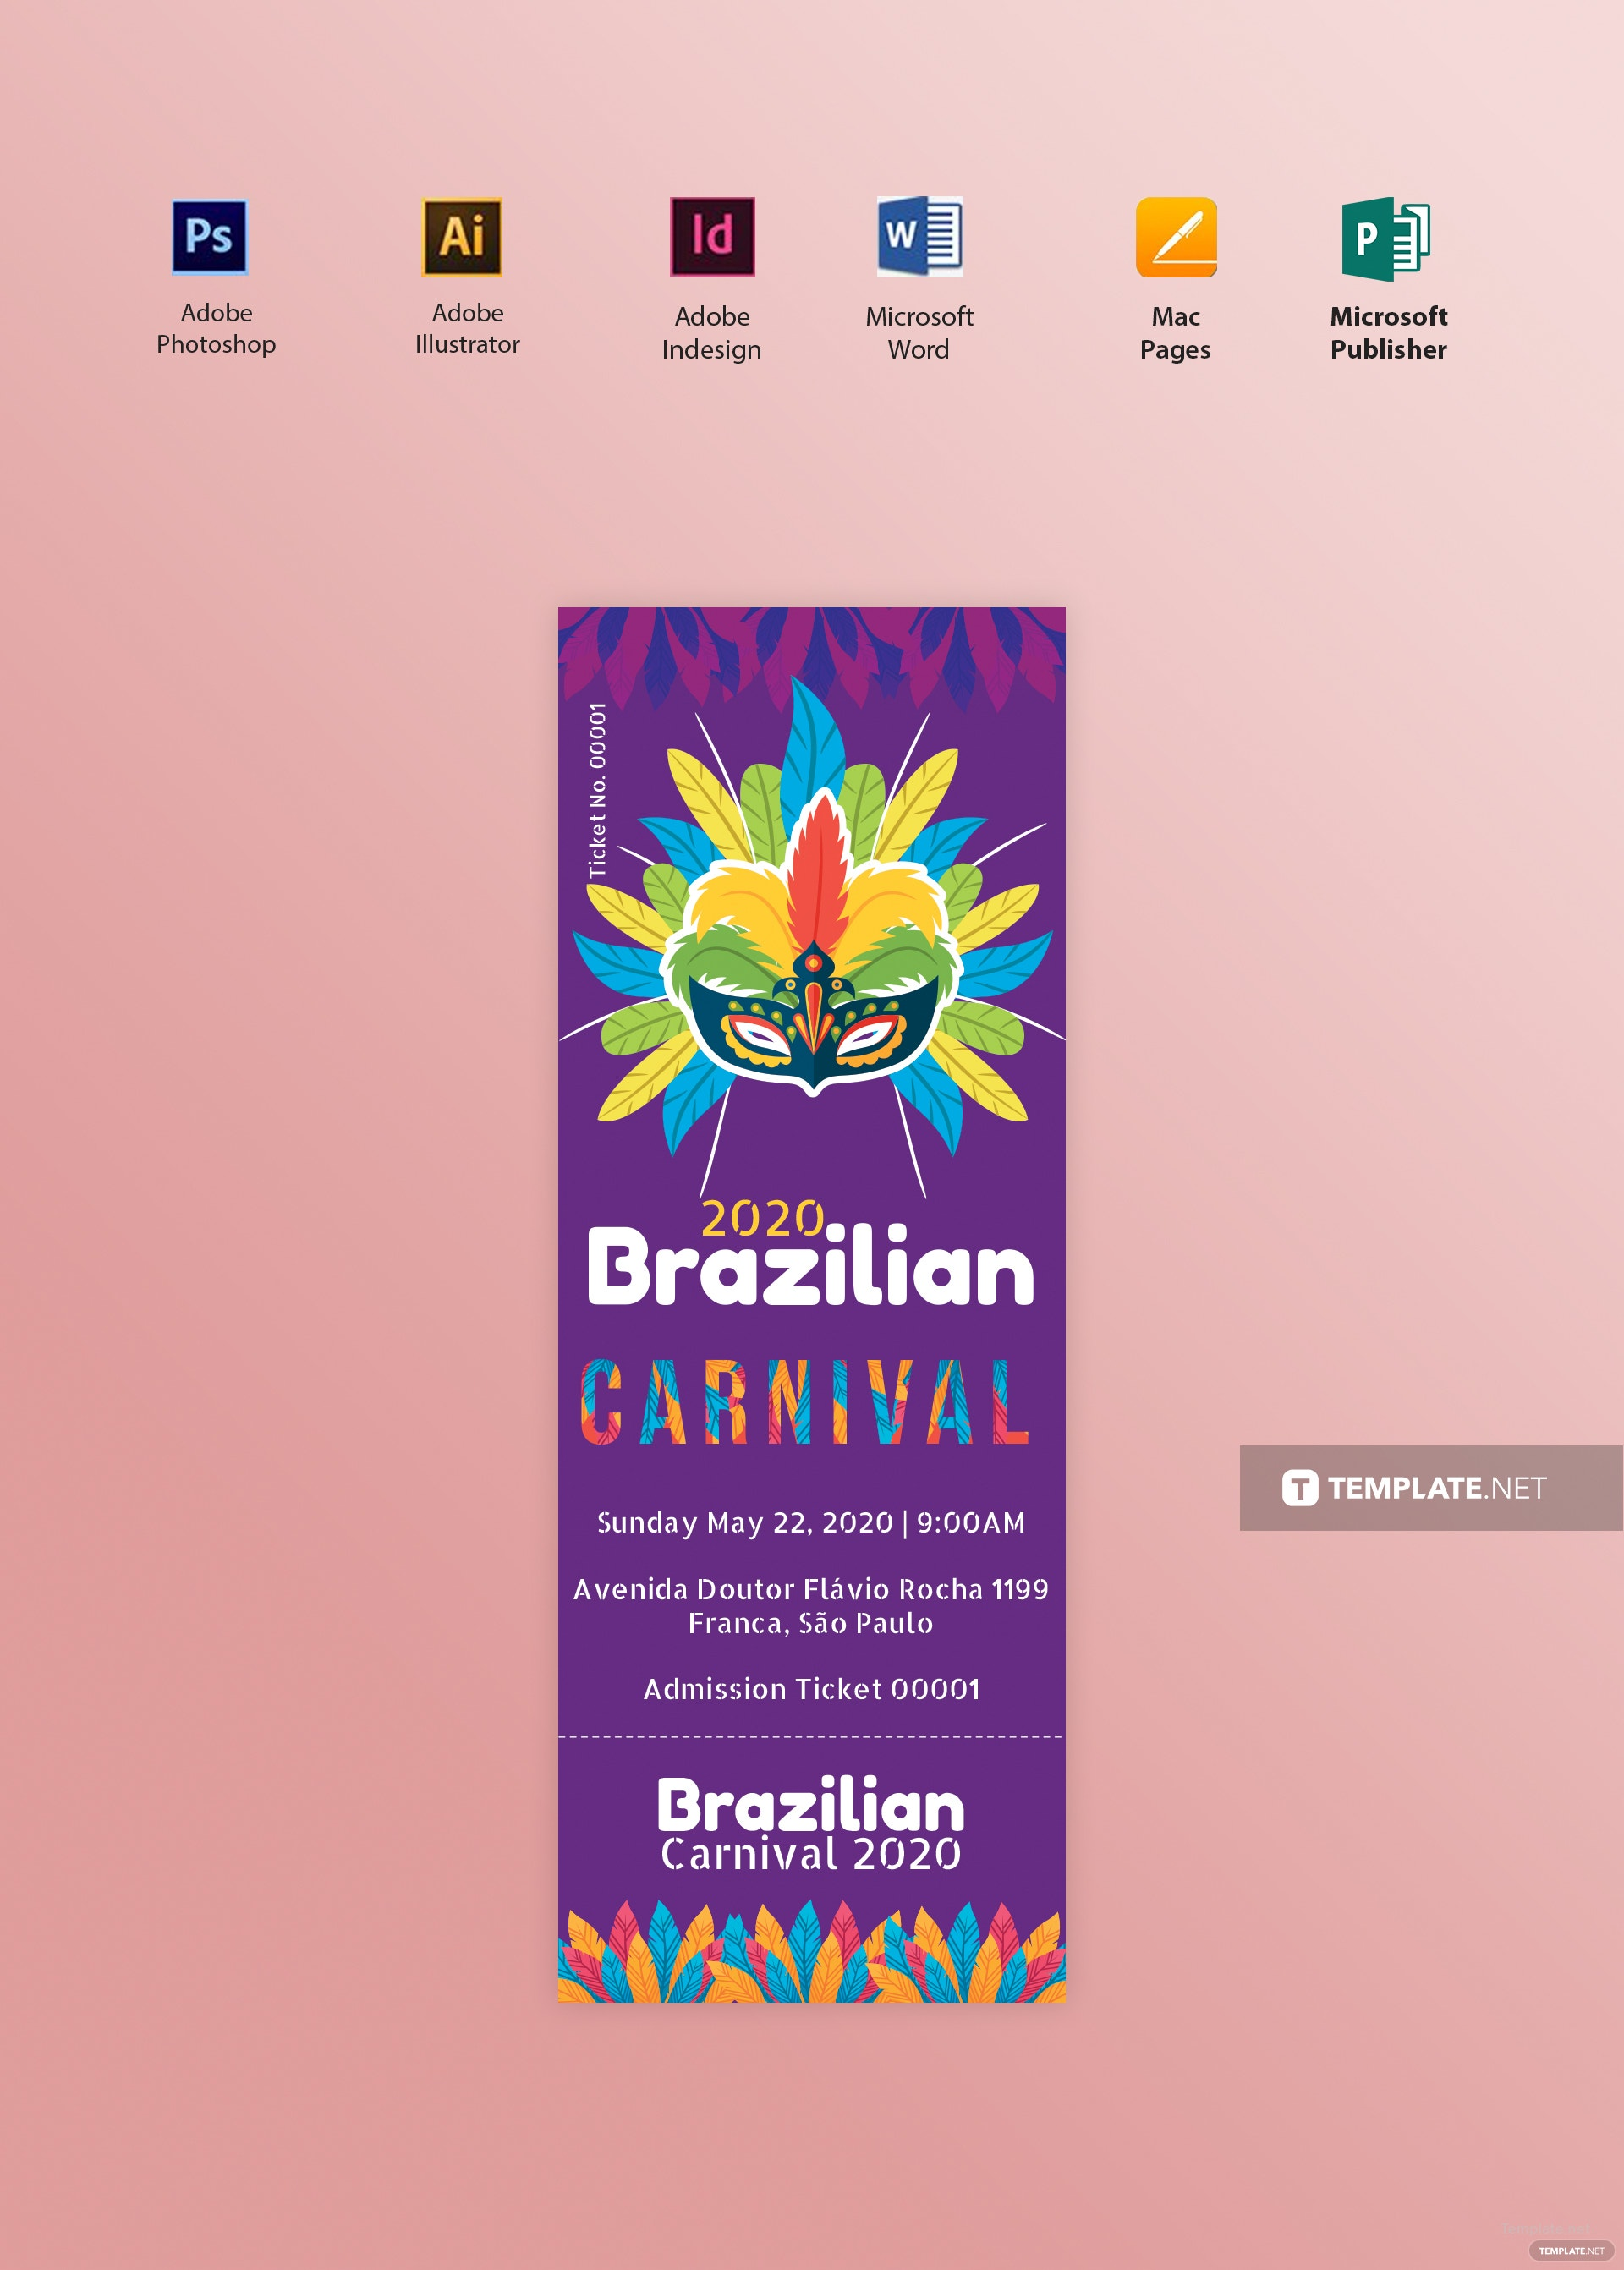 Free Carnival Admission Ticket Template in Adobe Photoshop ...